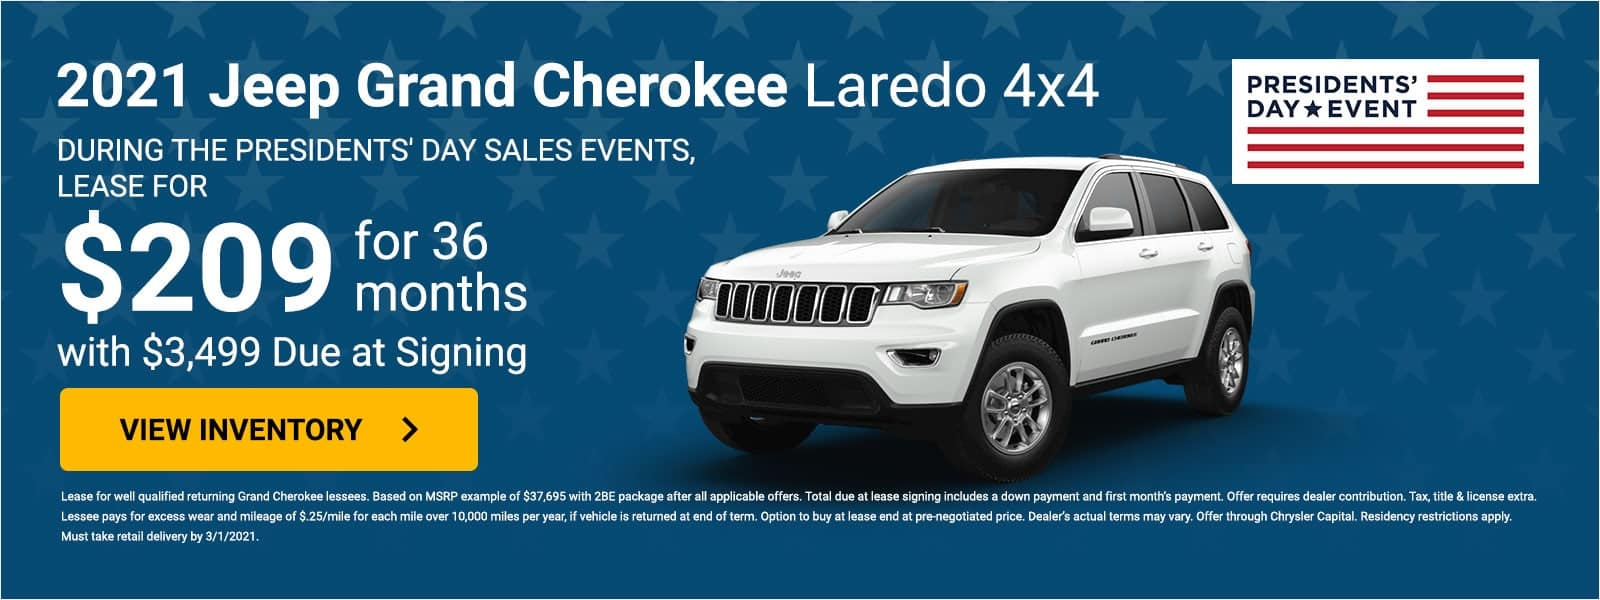 2021 Jeep Grand Cherokee offer